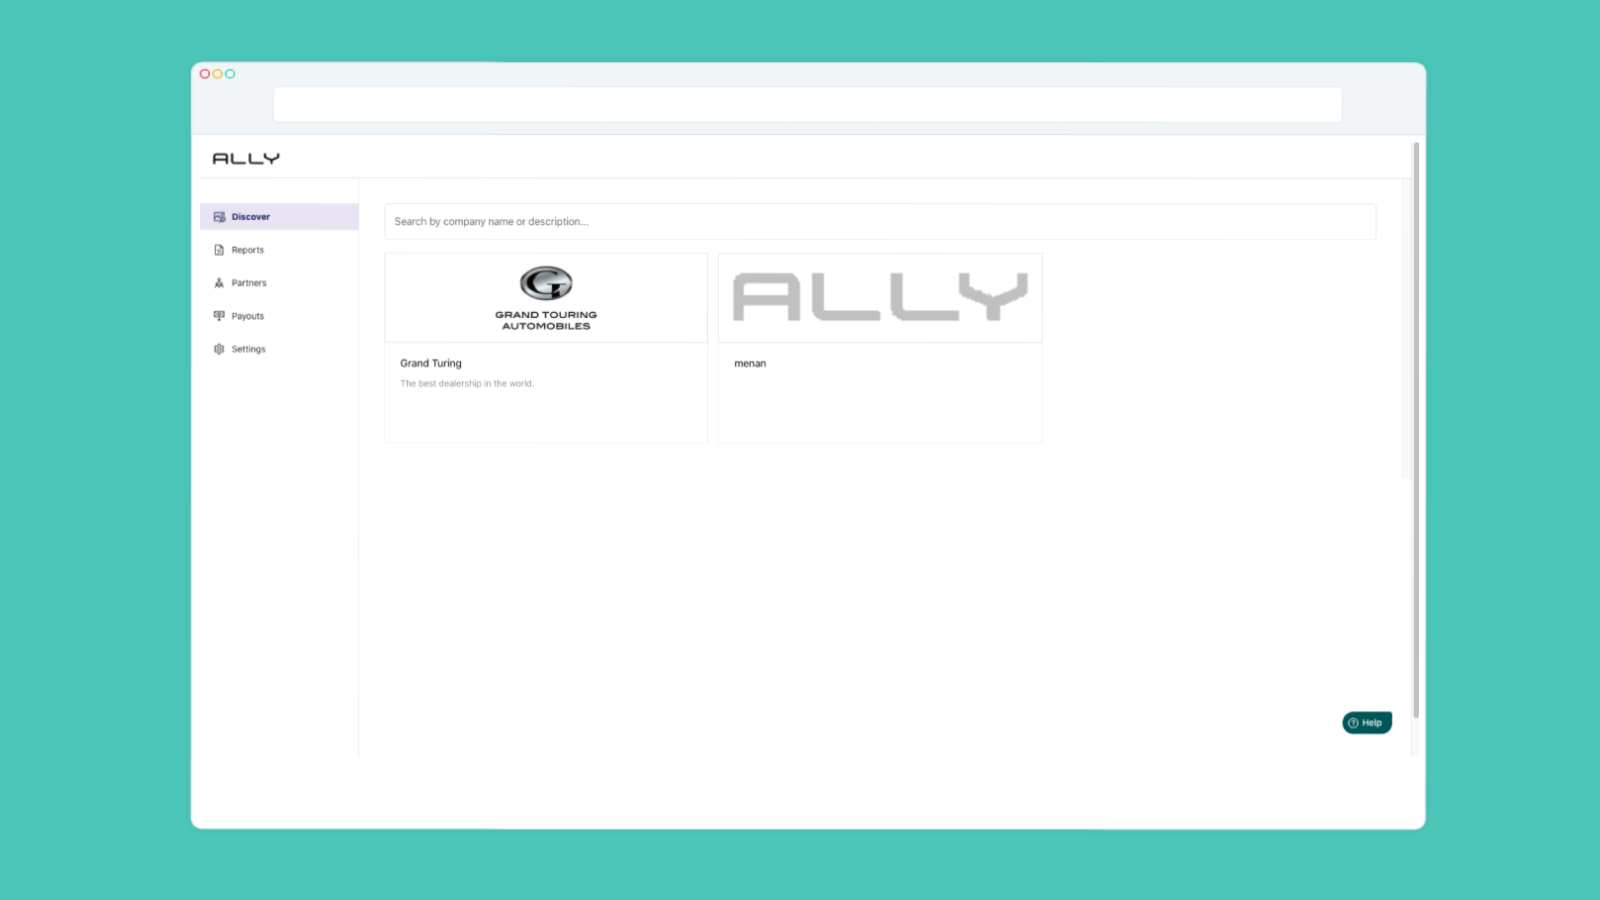 Ally dashboards discover tab. List of publishers to discover